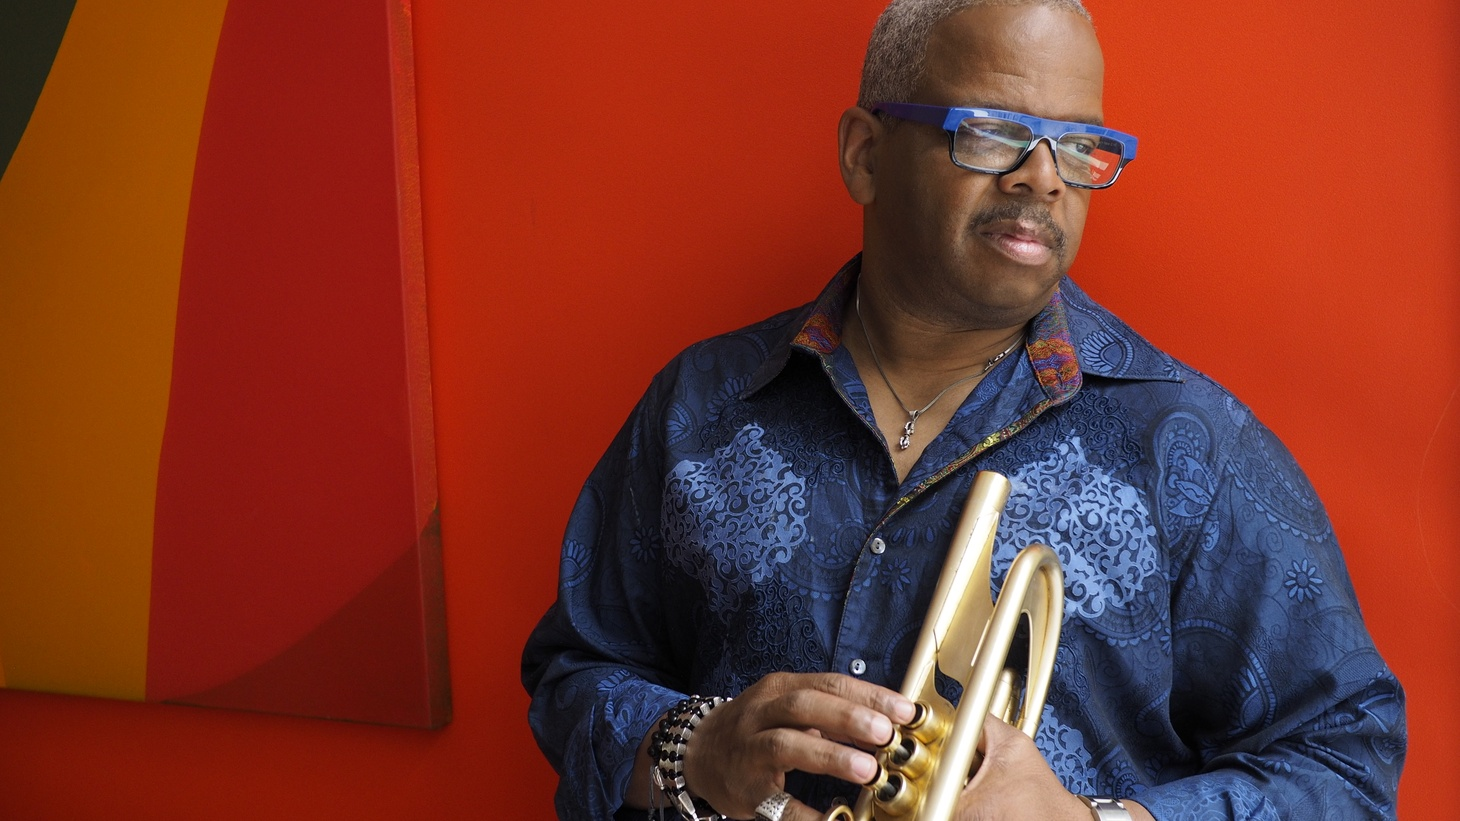 """We kept telling people, 'We know you're angry, we know you're frustrated. But let the music absorb that so we can have level heads to strategize to move forward,'"" says musician Terence Blanchard."